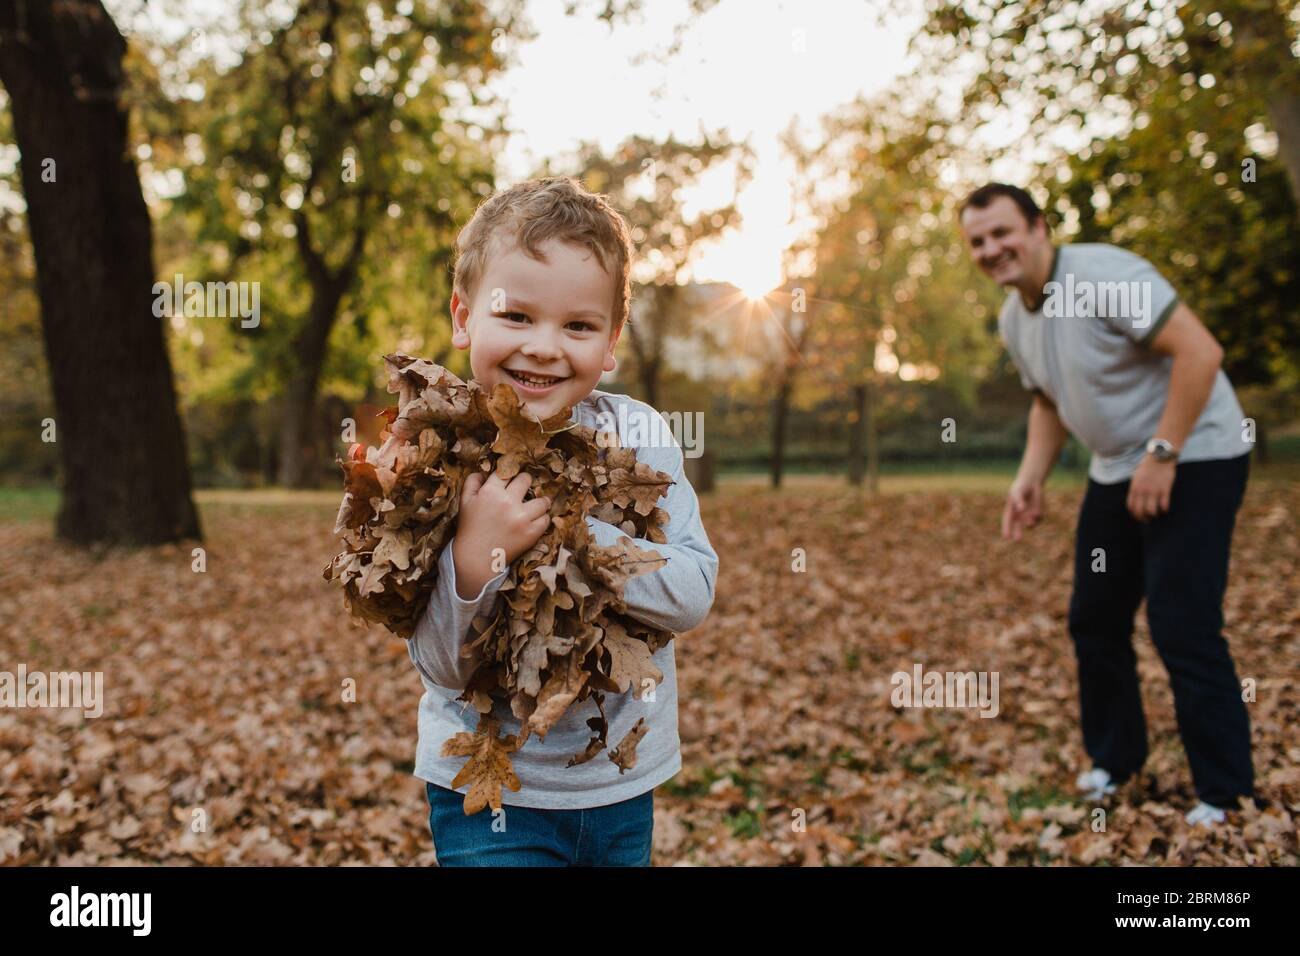 Young boy collecting autumn leaves with father. Cute child clasping an armful of dry brown leaves and smiling towards the camera with his father. Stock Photo